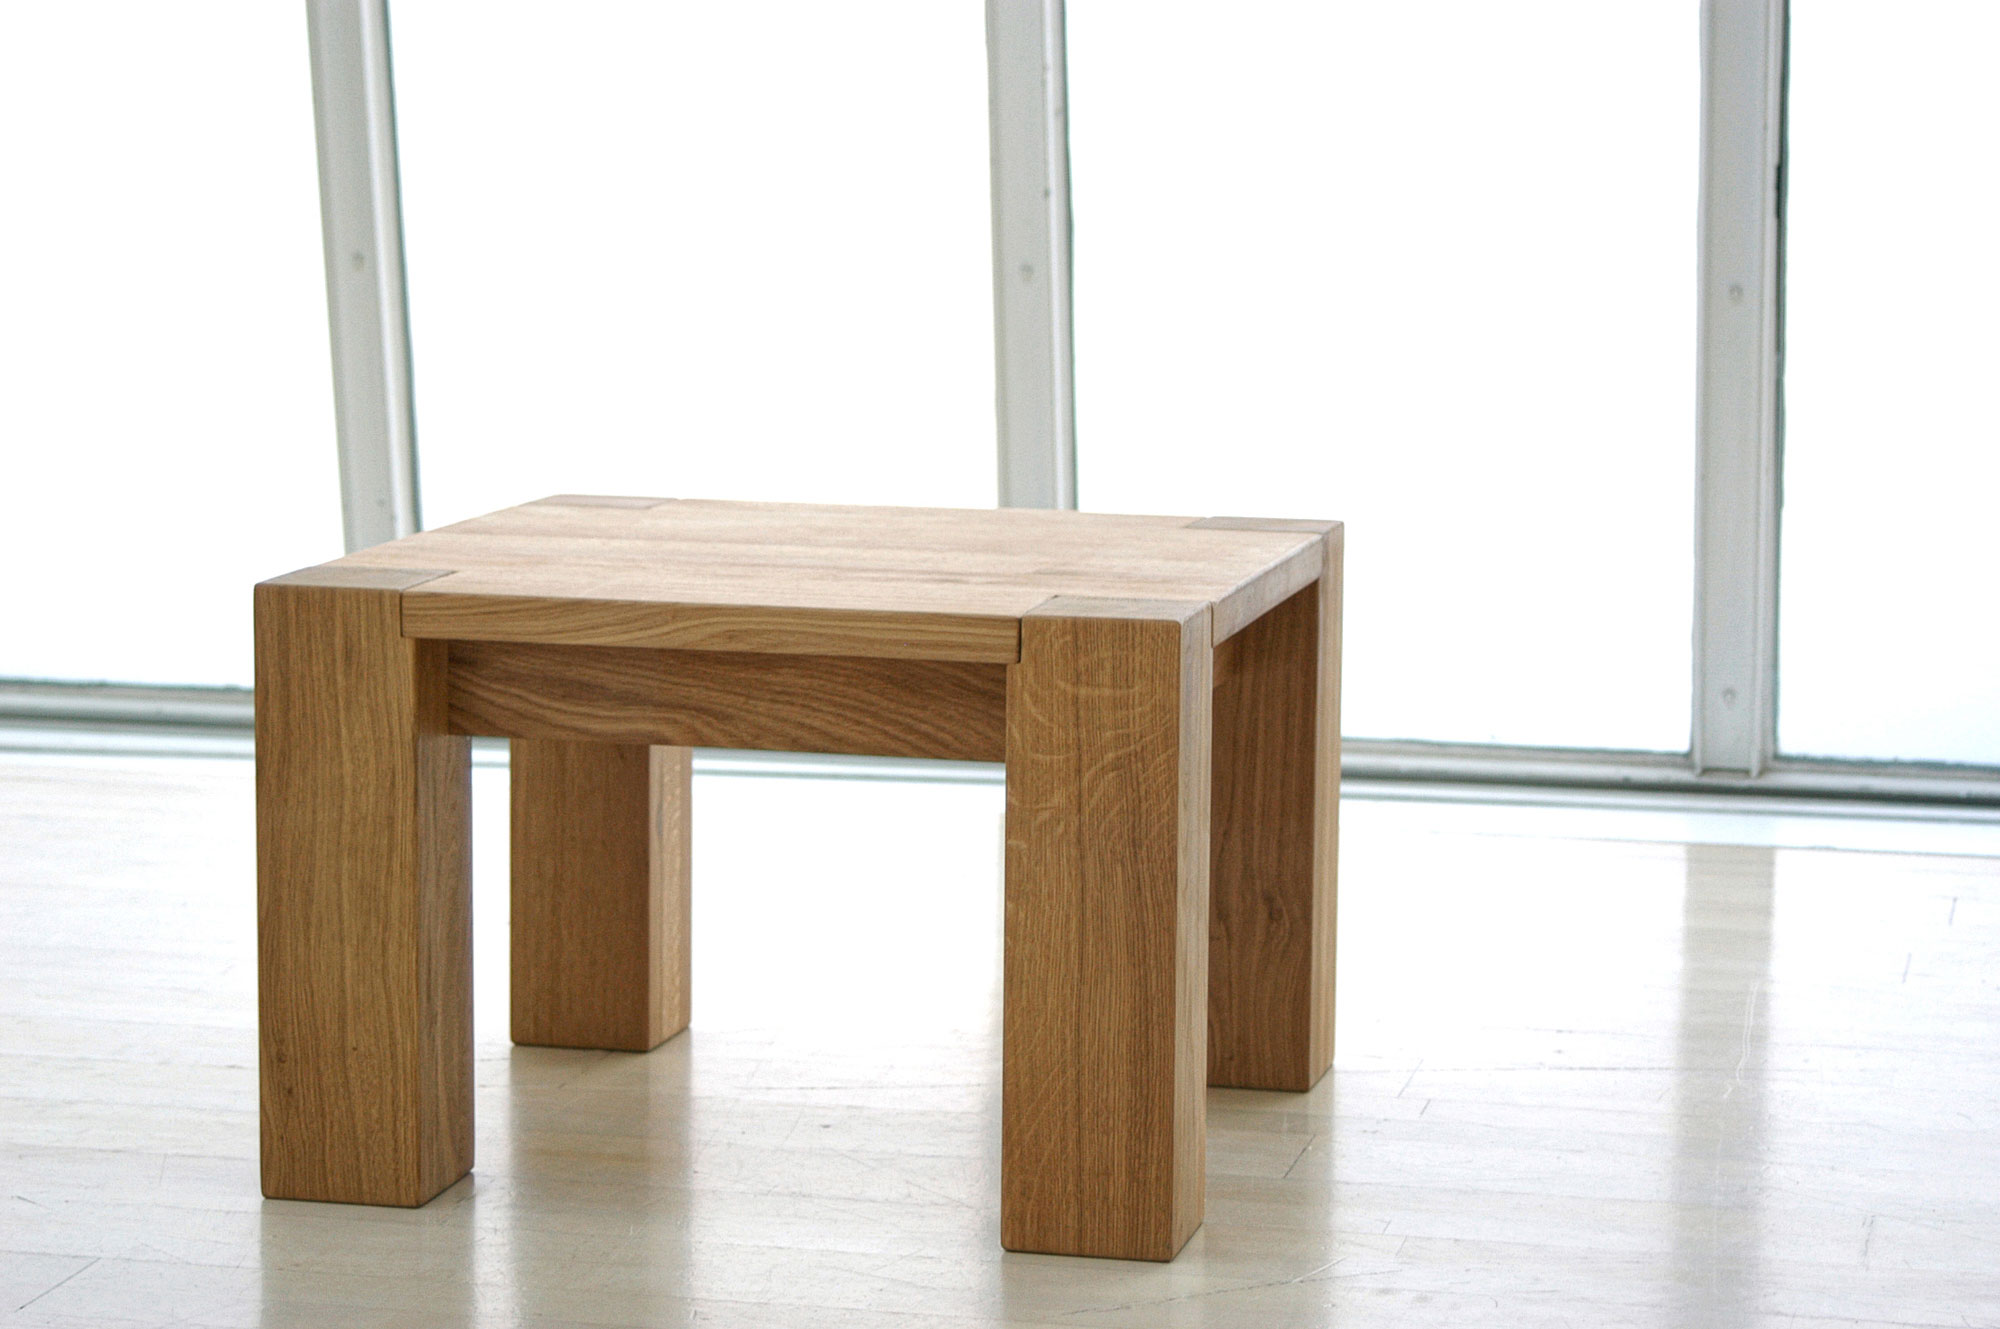 Coffee Table Rustic TAURUS 3  custom made in solid wood by vitamin design